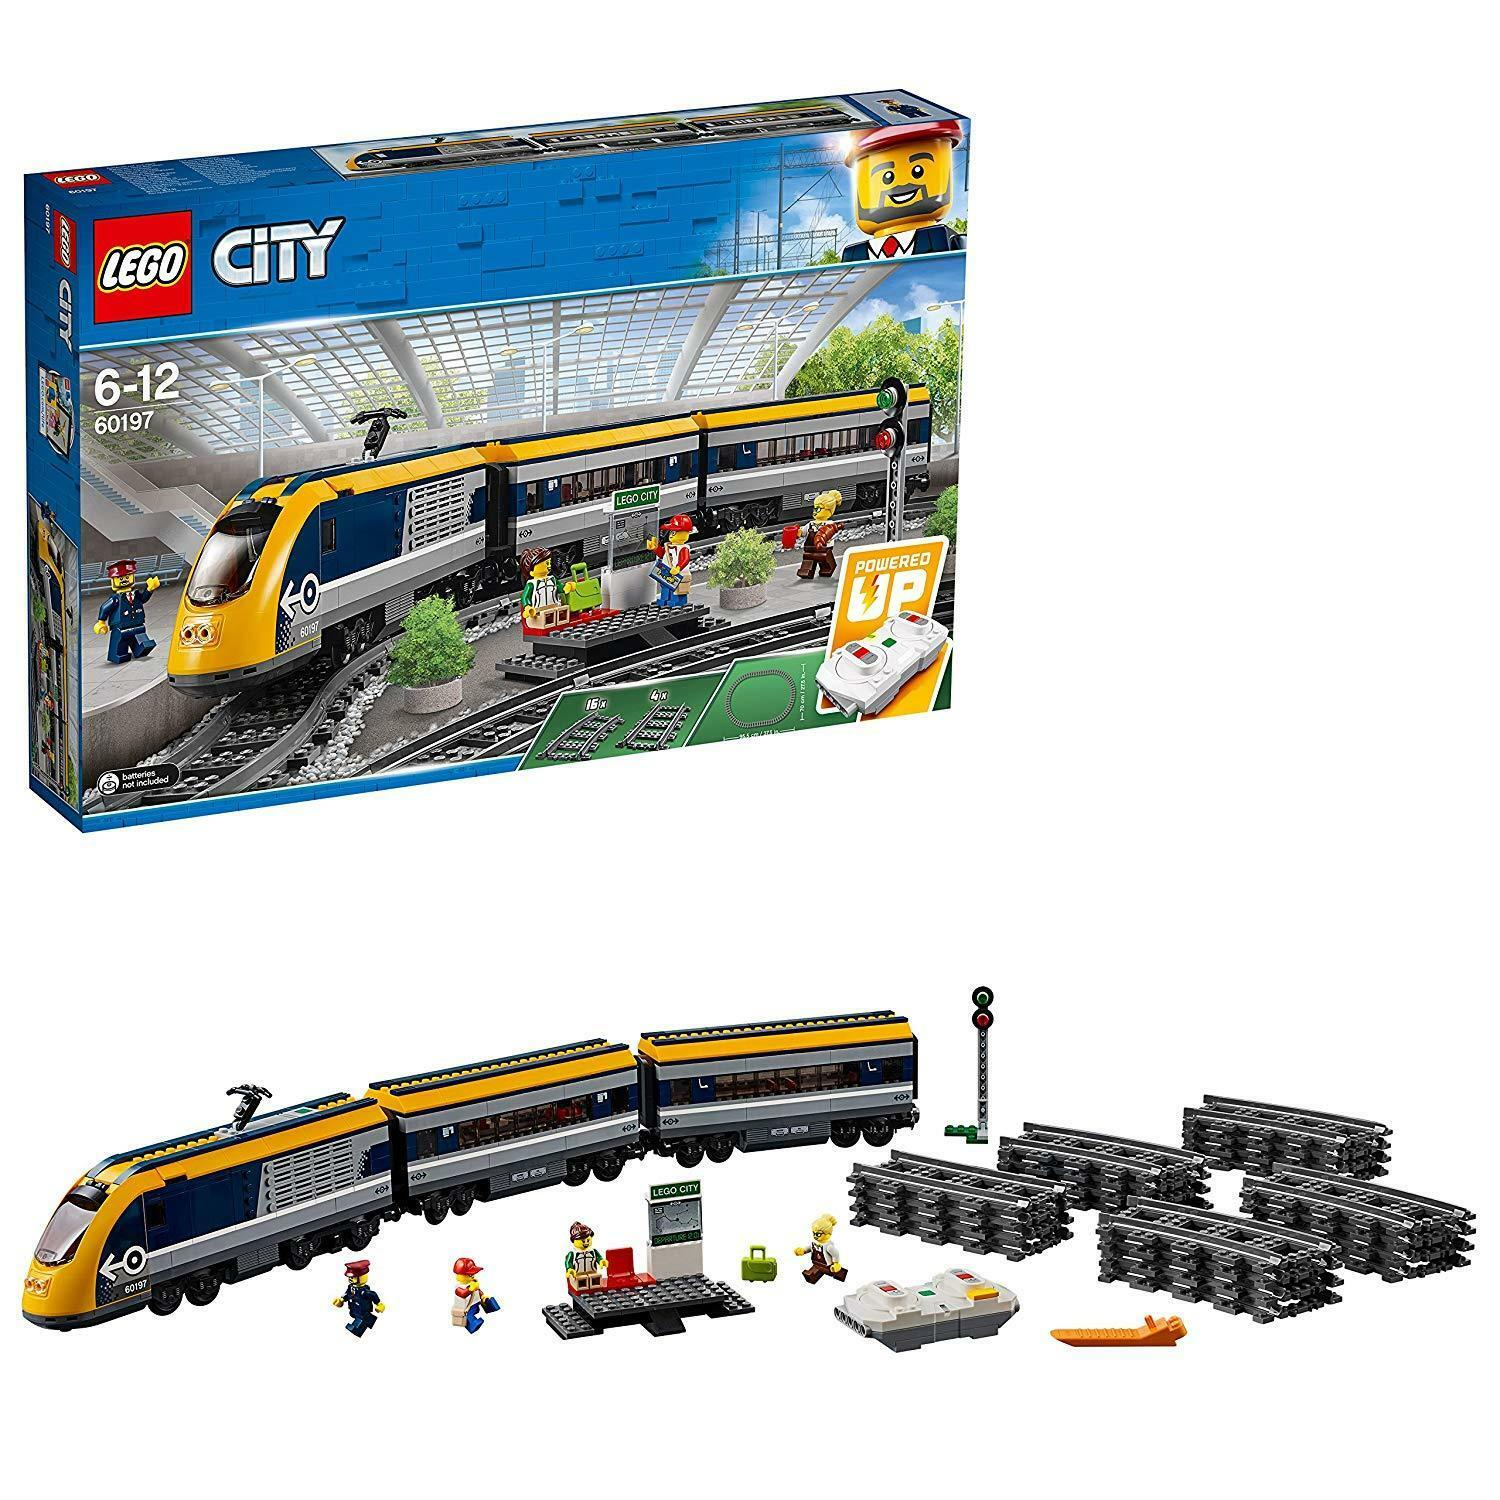 LEGO 60197 City Passenger RC Train Toy Construction Track Set For Kids